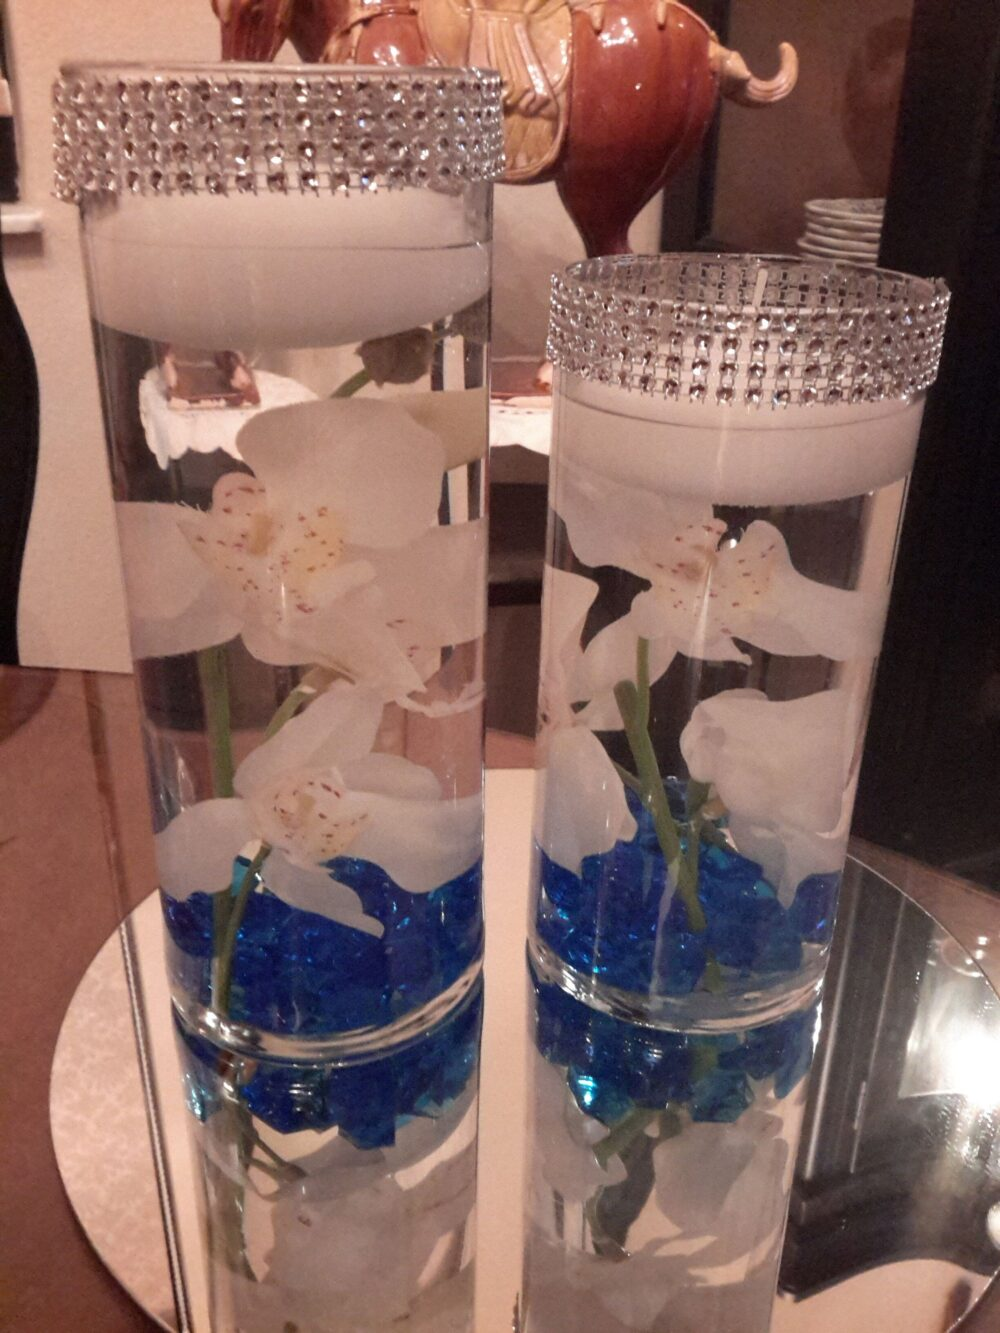 Floral Floating Candle Set-Bling Orchid Cylinder Centerpiece-Floating Candles-Party-Wedding-Gift-Anniversary-Birthday-Shower-Candle Gift Set